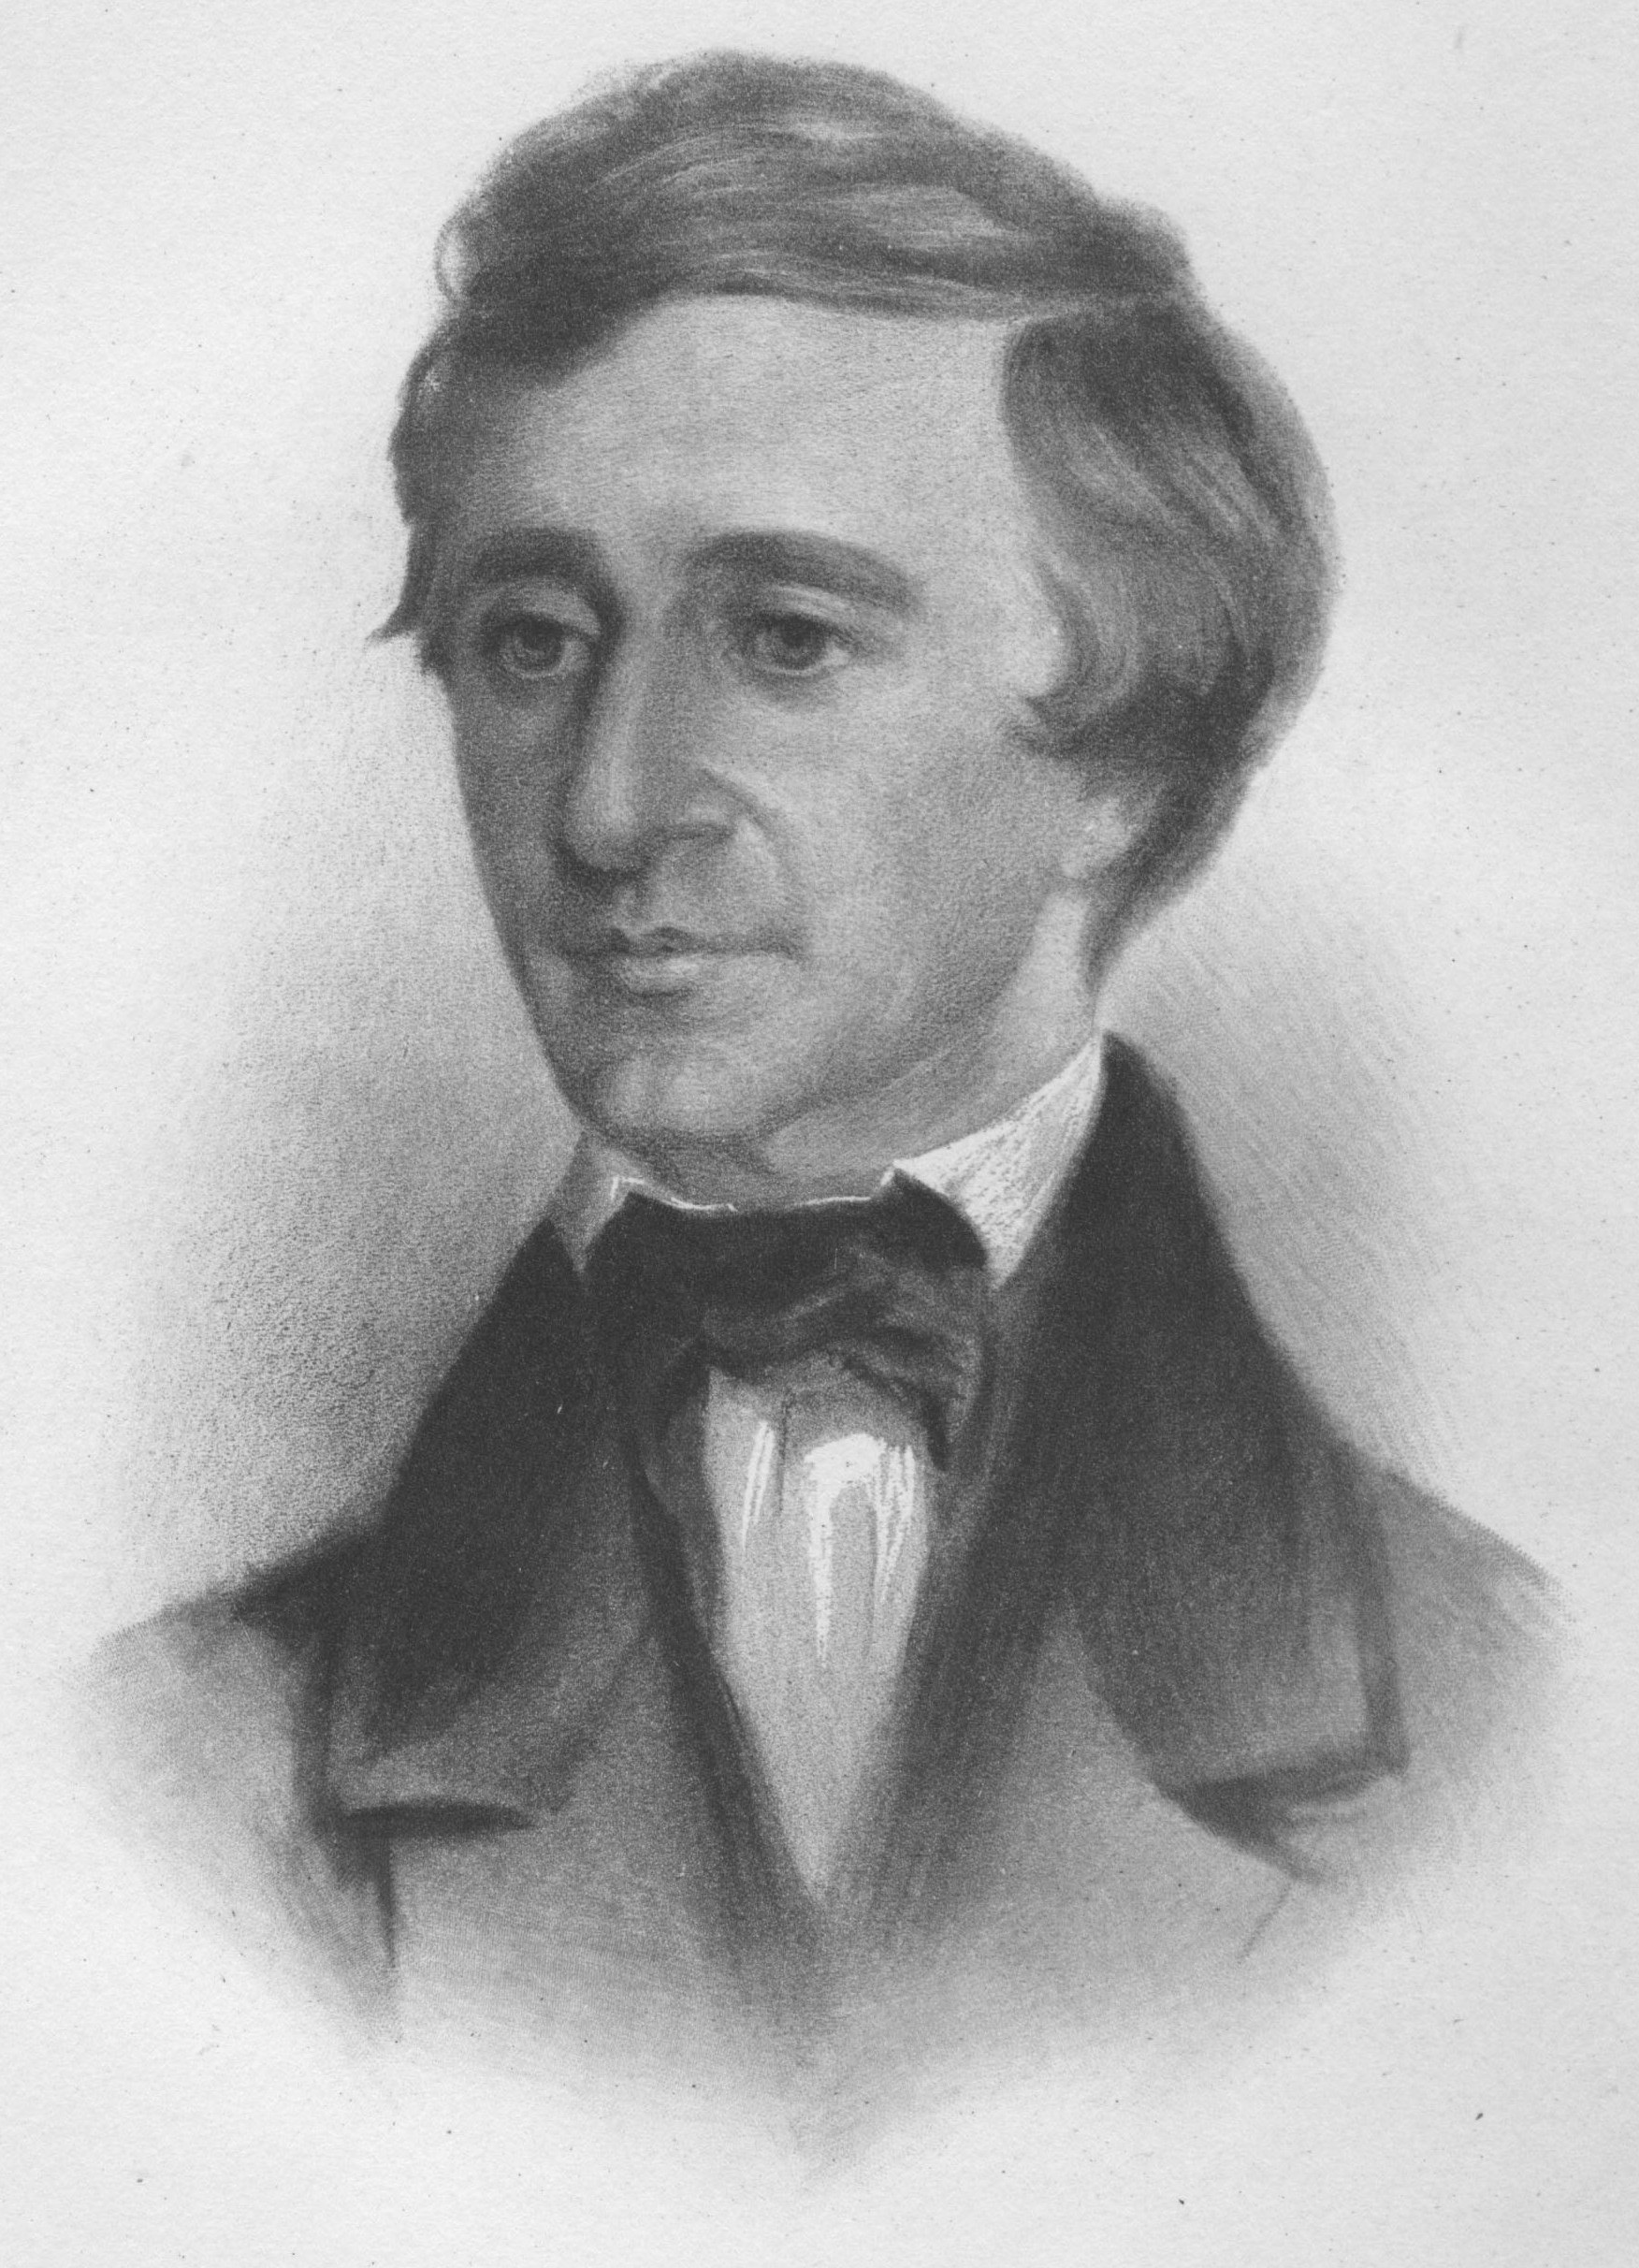 The young Henry David Thoreau